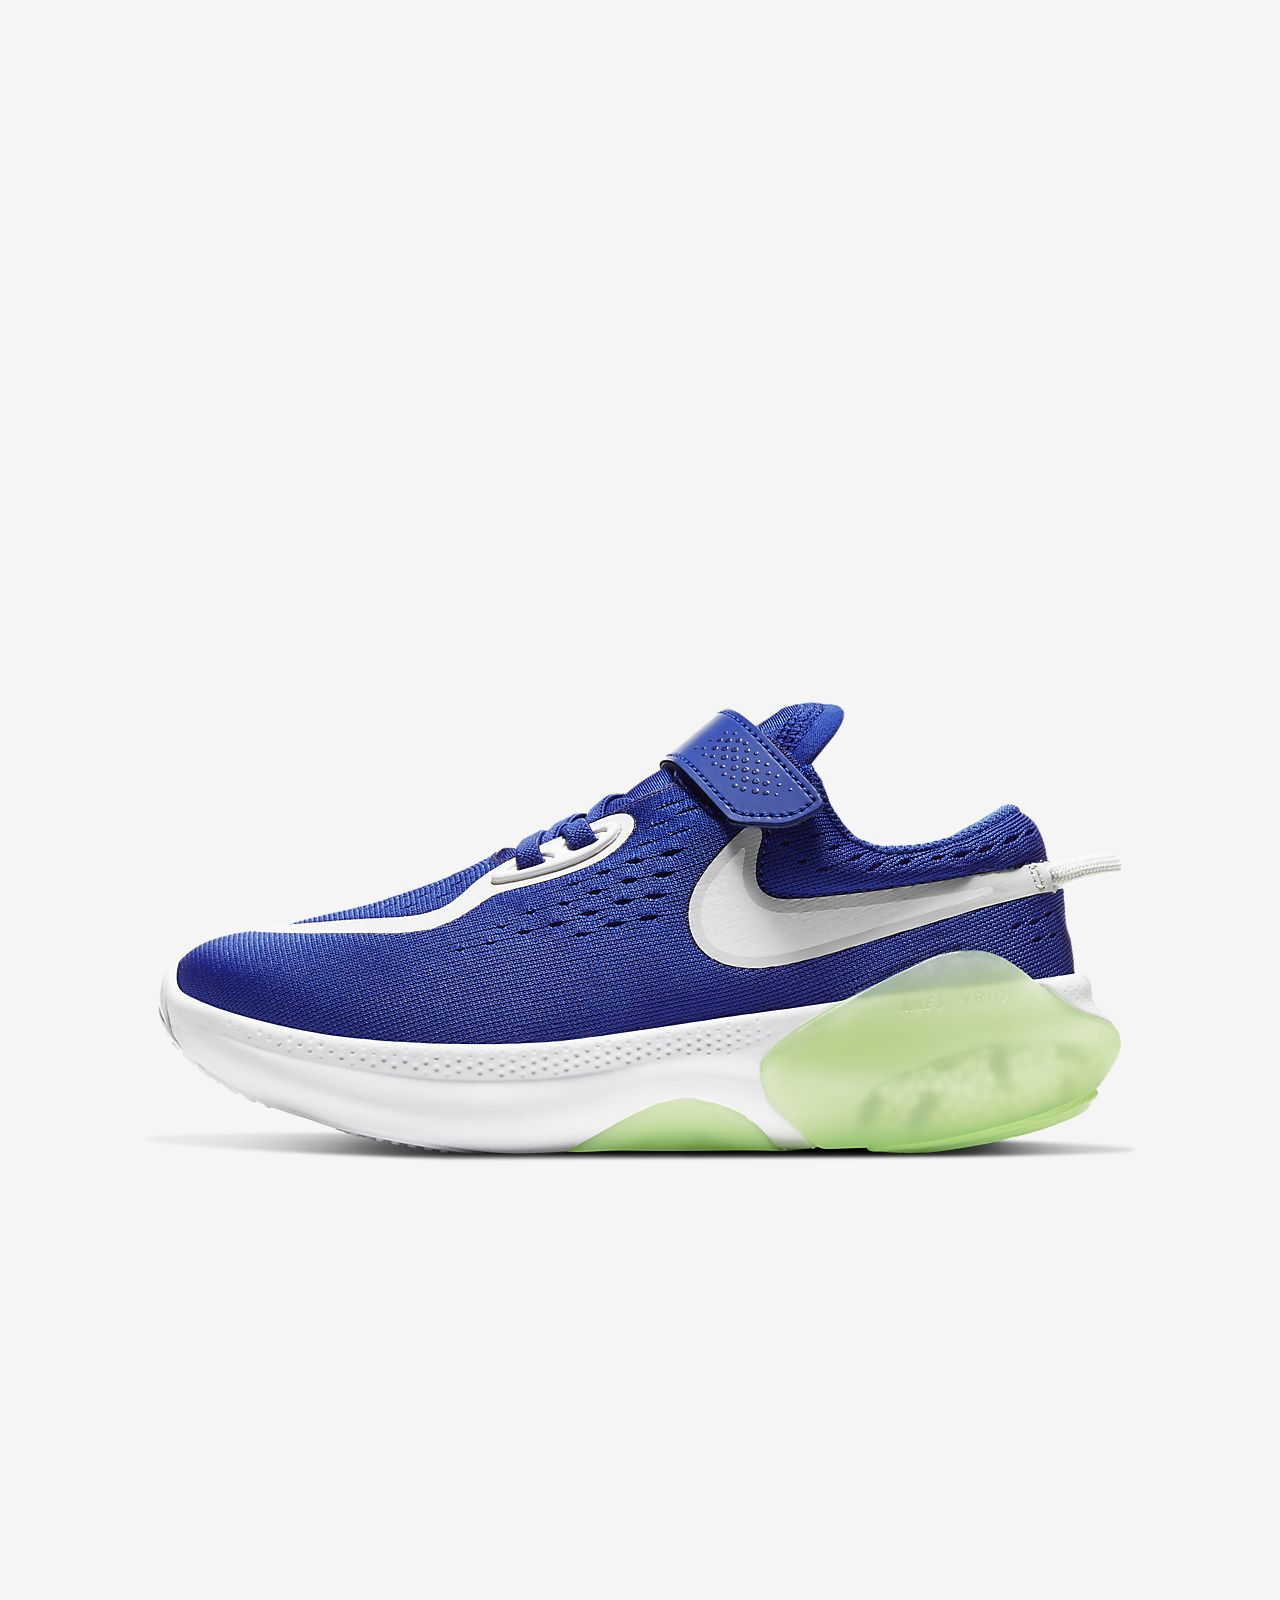 Nike Joyride Dual Run Little Kids' Shoe